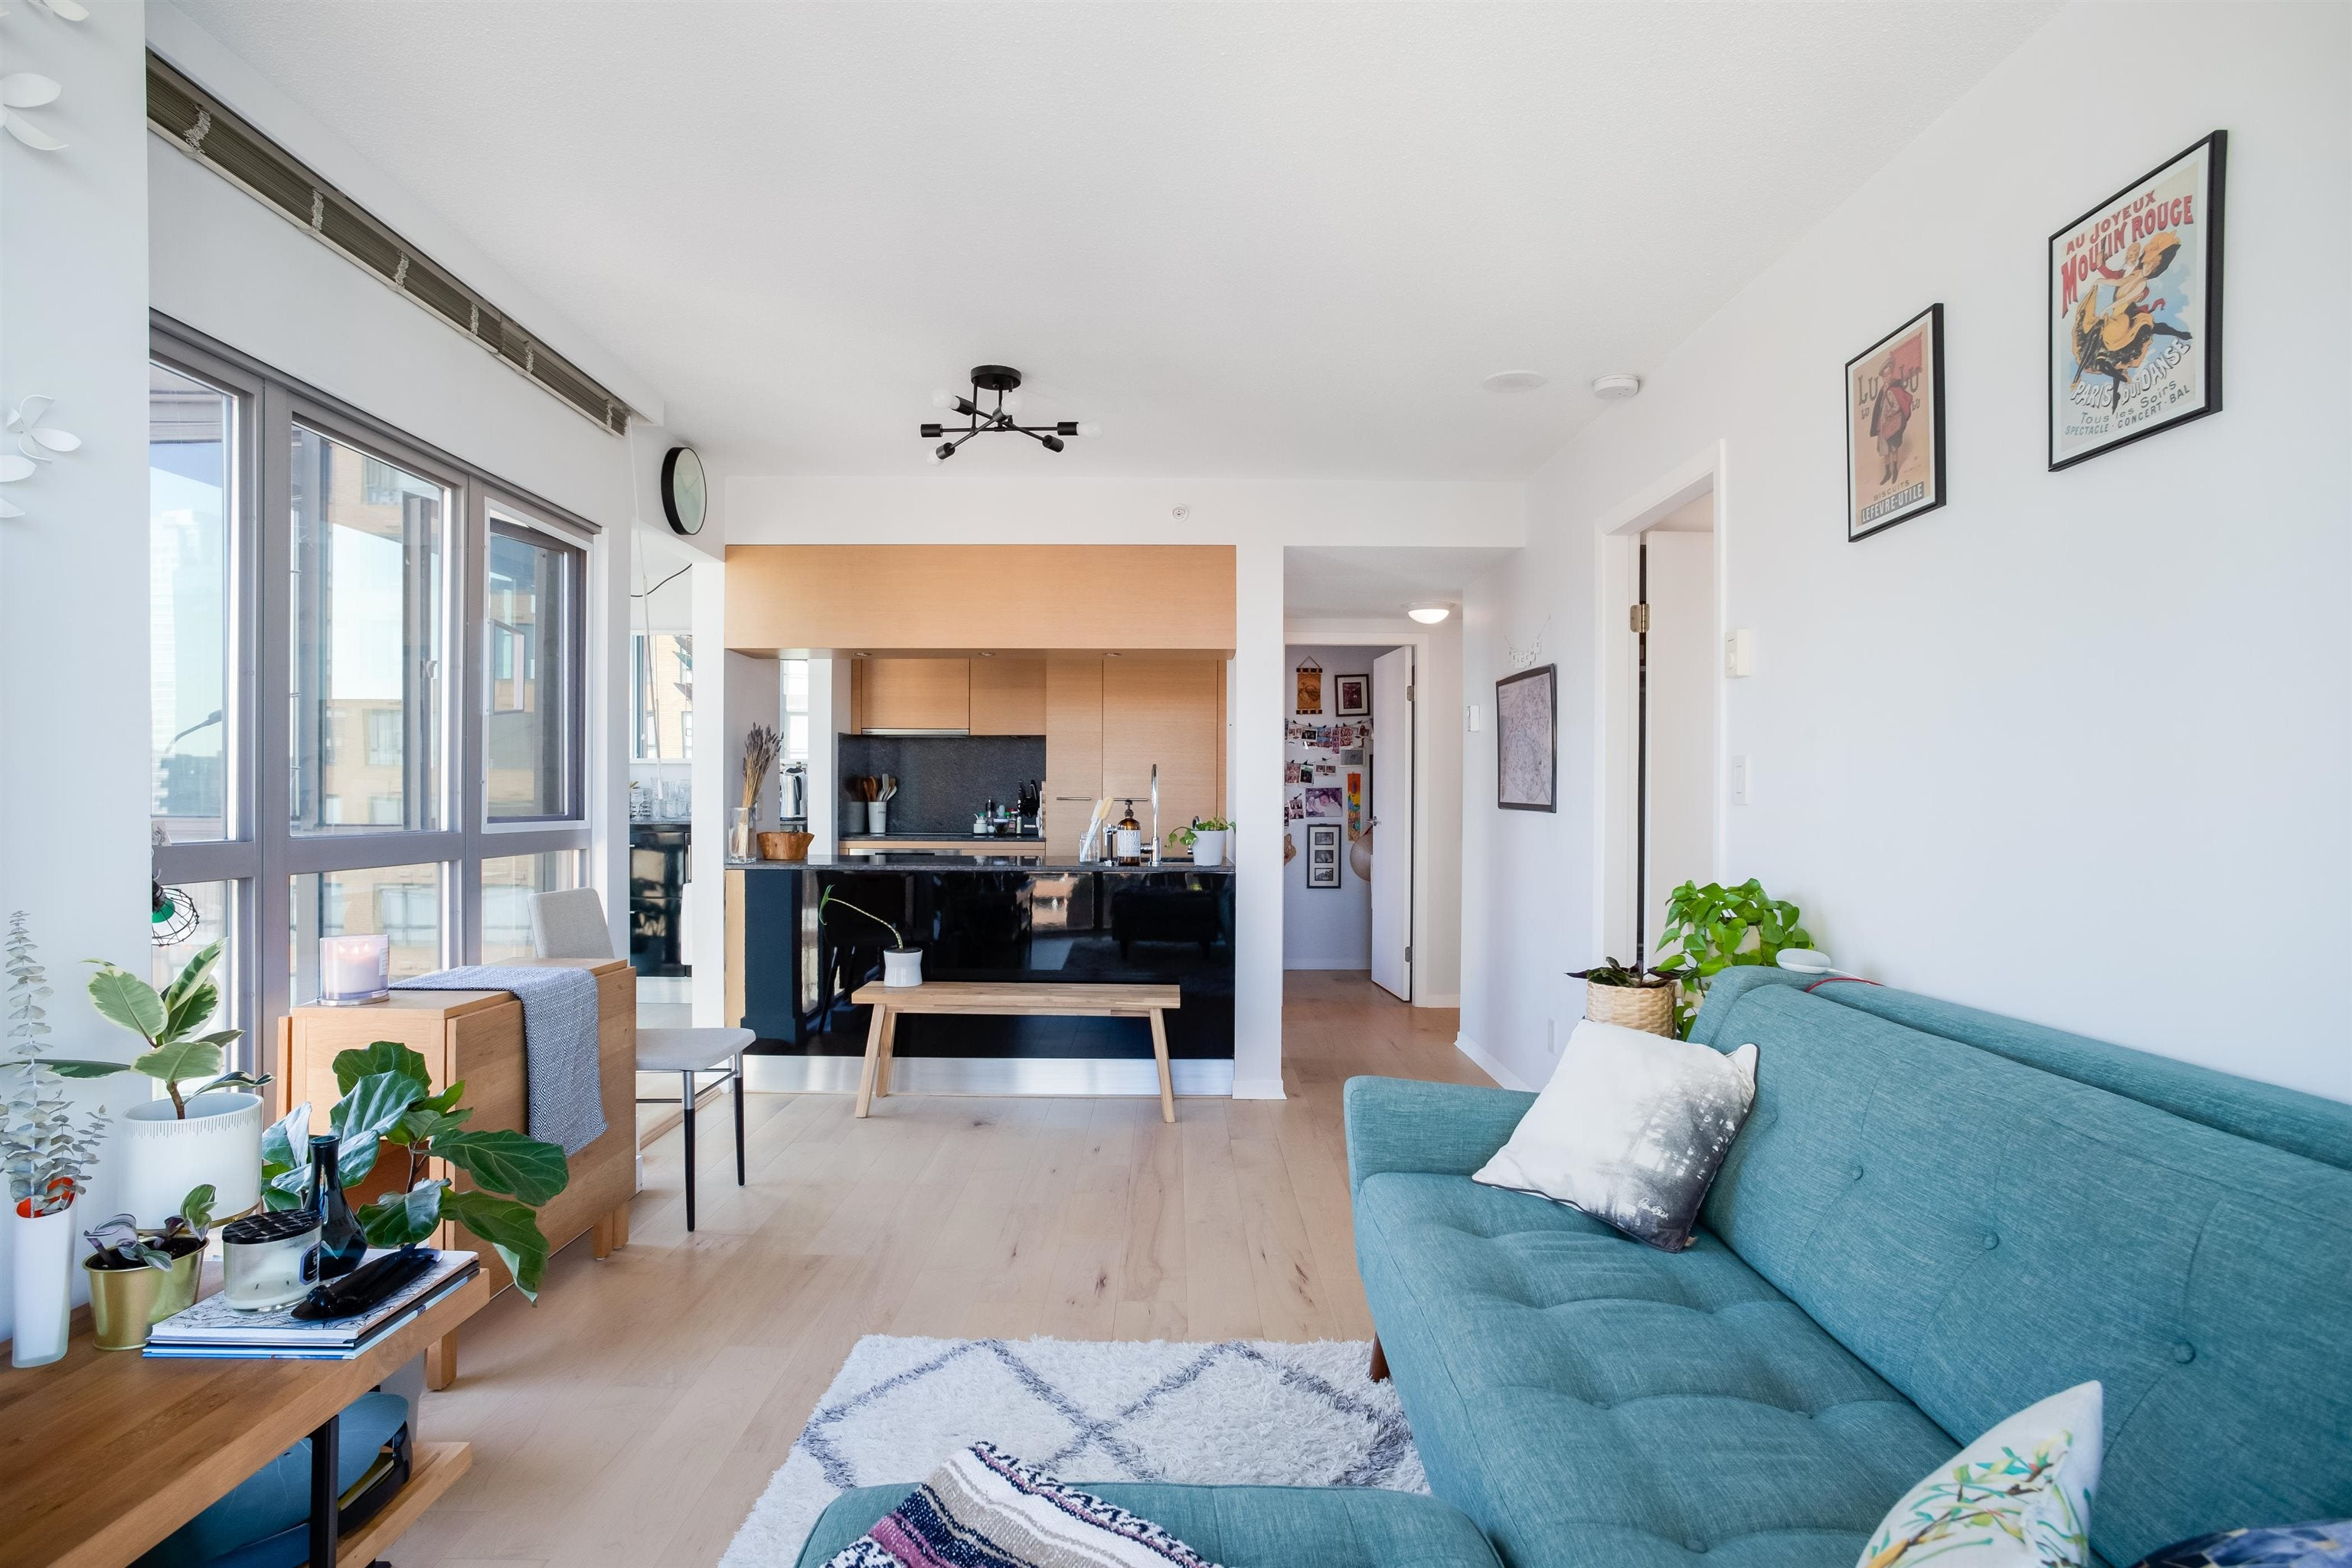 2108 1188 HOWE STREET - Downtown VW Apartment/Condo for sale, 2 Bedrooms (R2615044) - #1